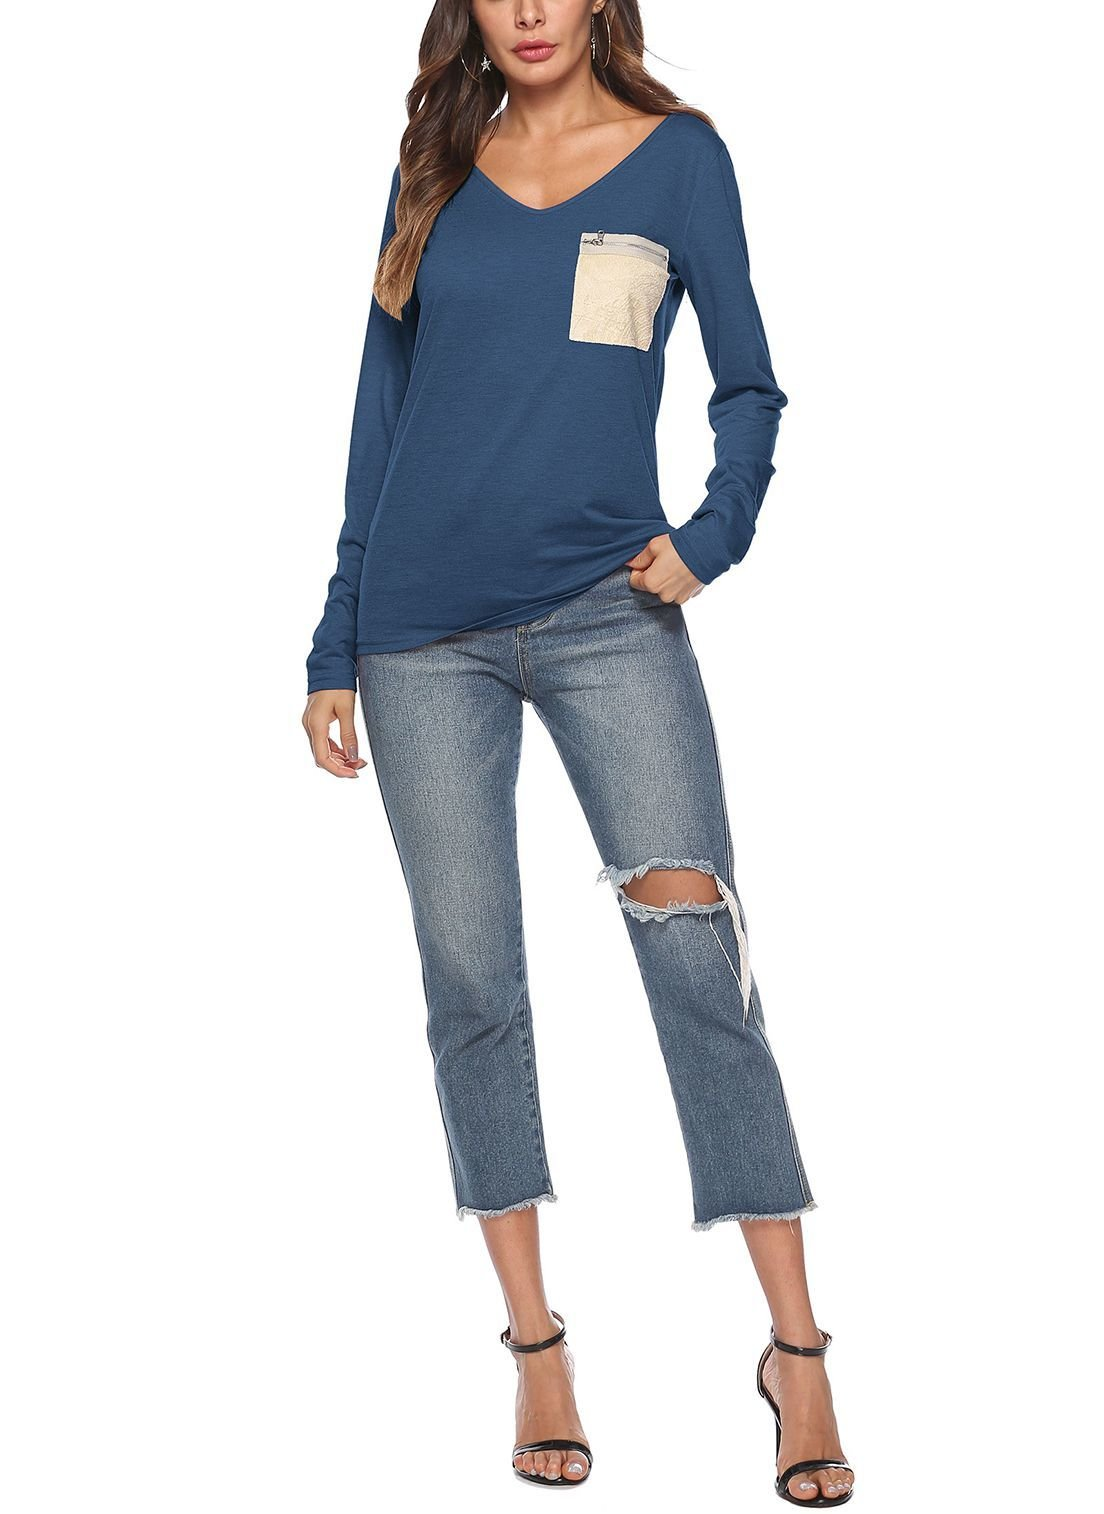 V-Neck Tee with Long Sleeves and Zipped Pocket